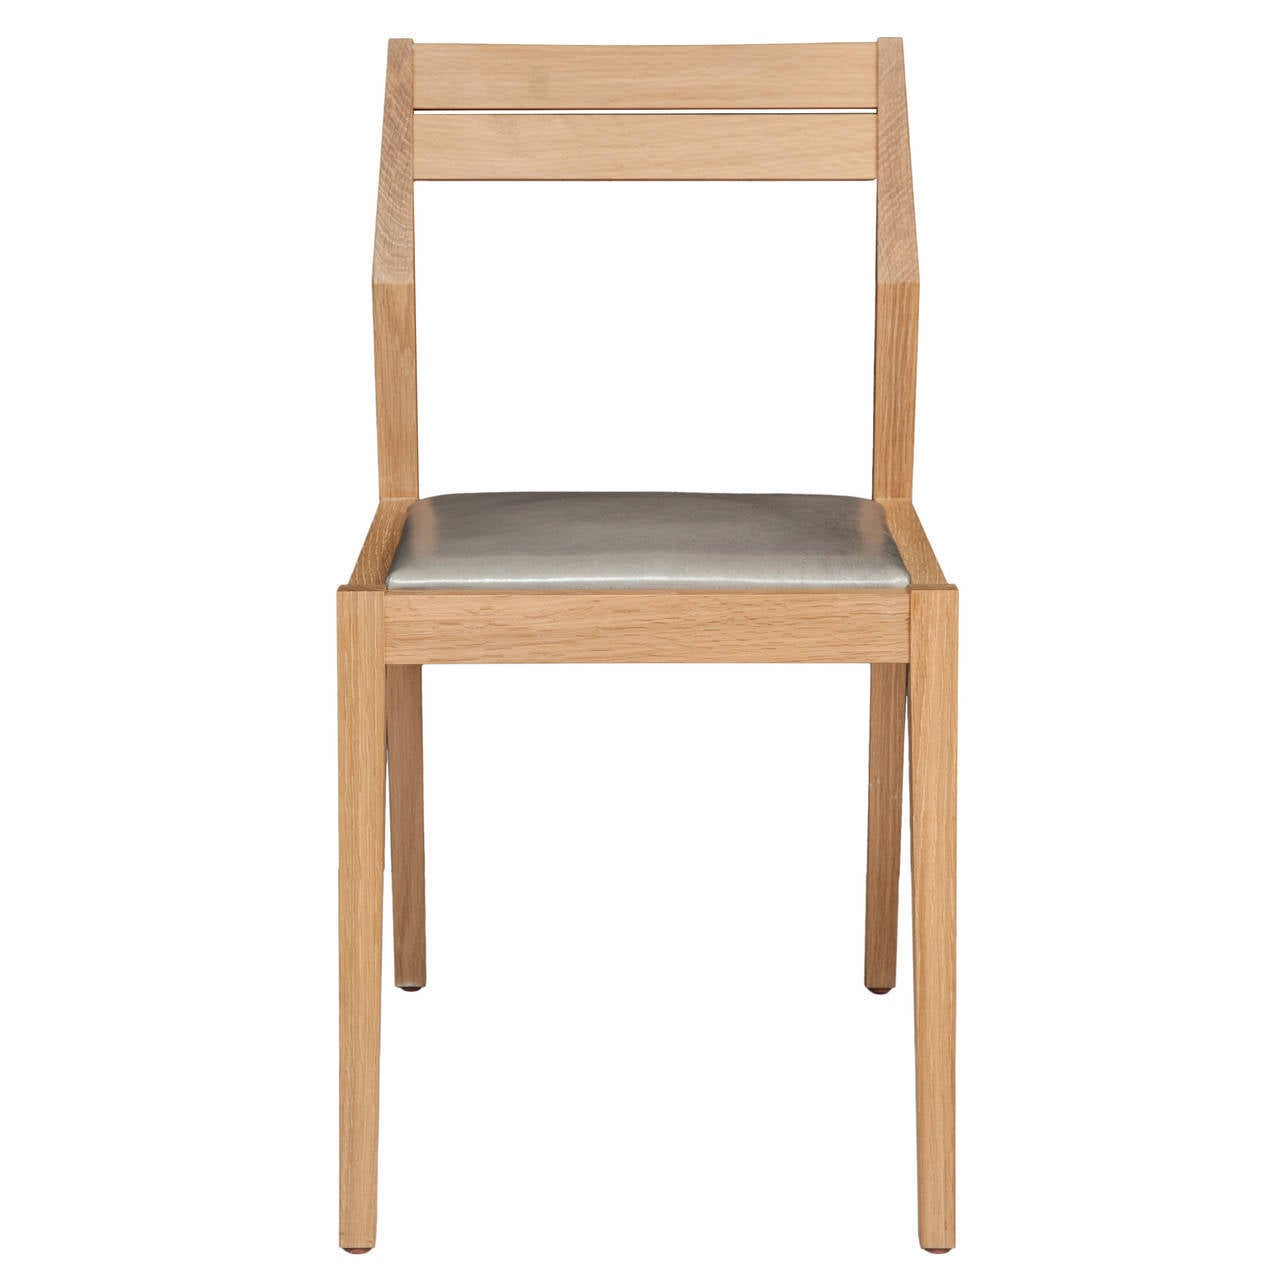 Stillmade Solid White Oak Dining Chair With Leather Seat